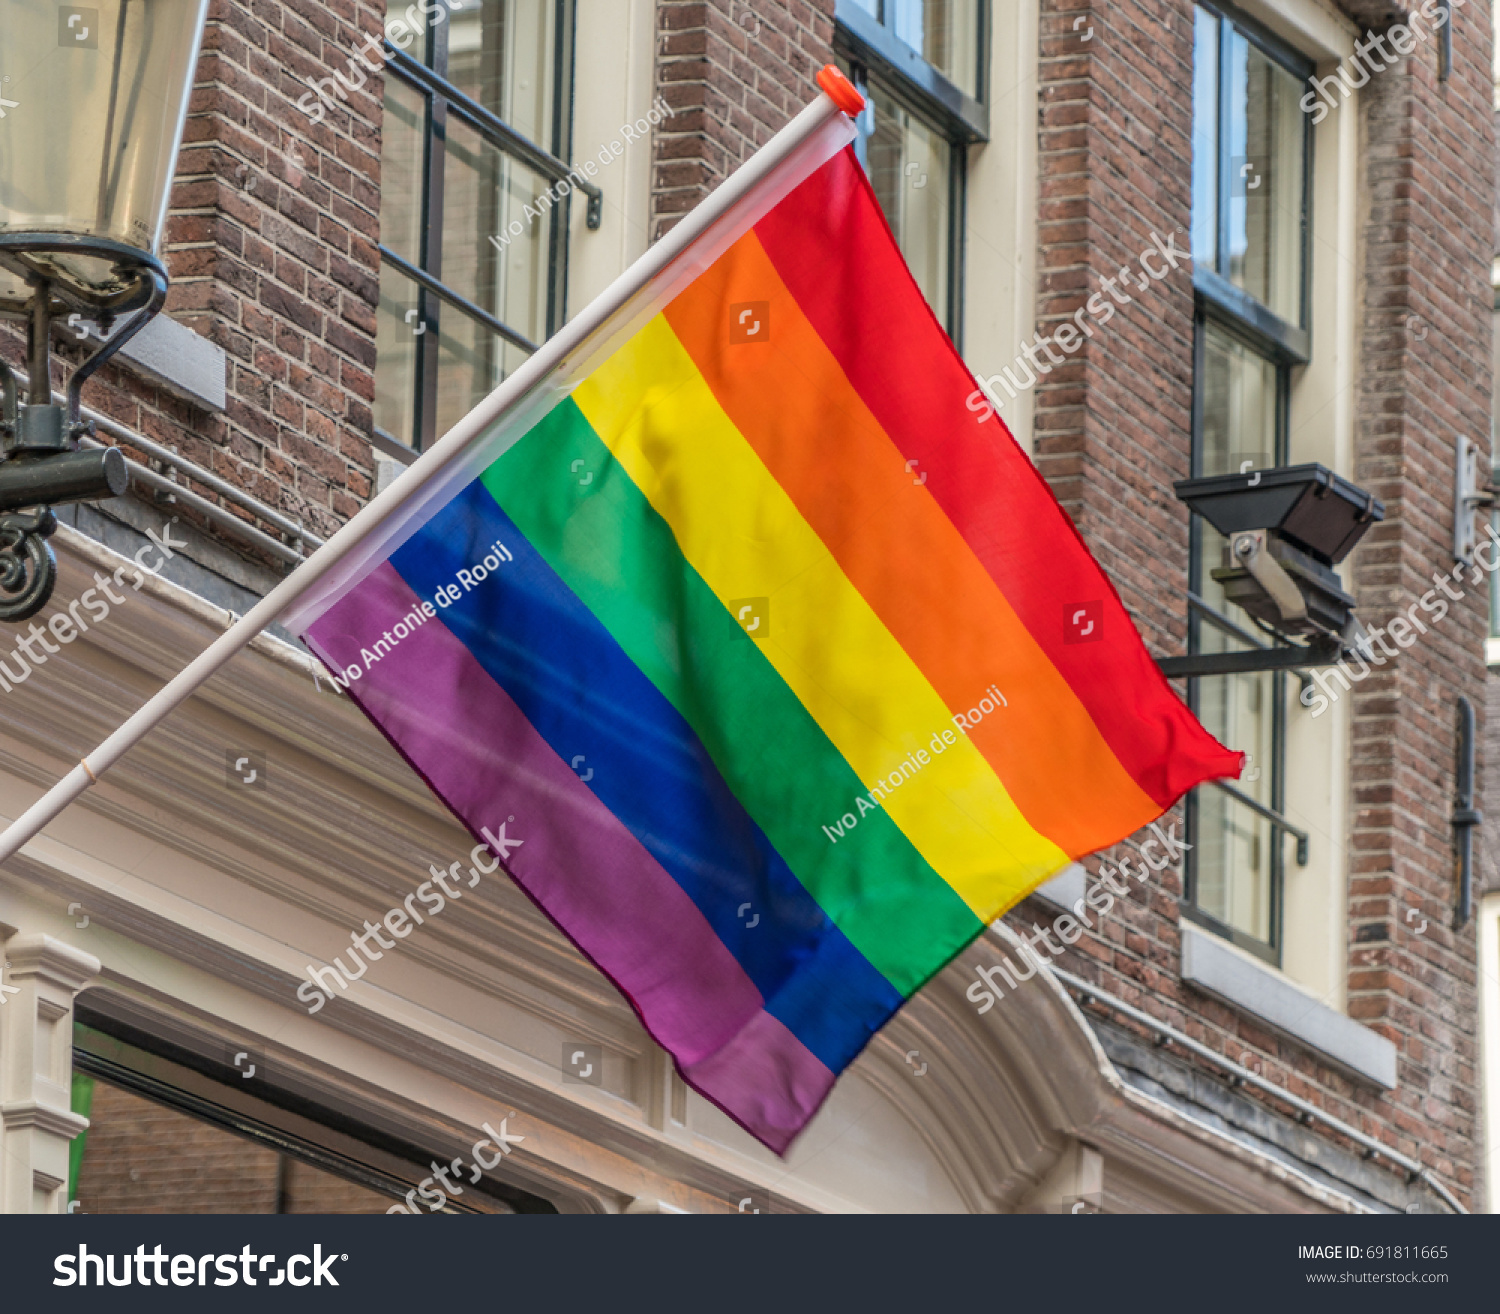 Rainbow flag symbol equal rights all stock photo 691811665 rainbow flag the symbol of equal rights for all genders representing lgbt pride buycottarizona Image collections